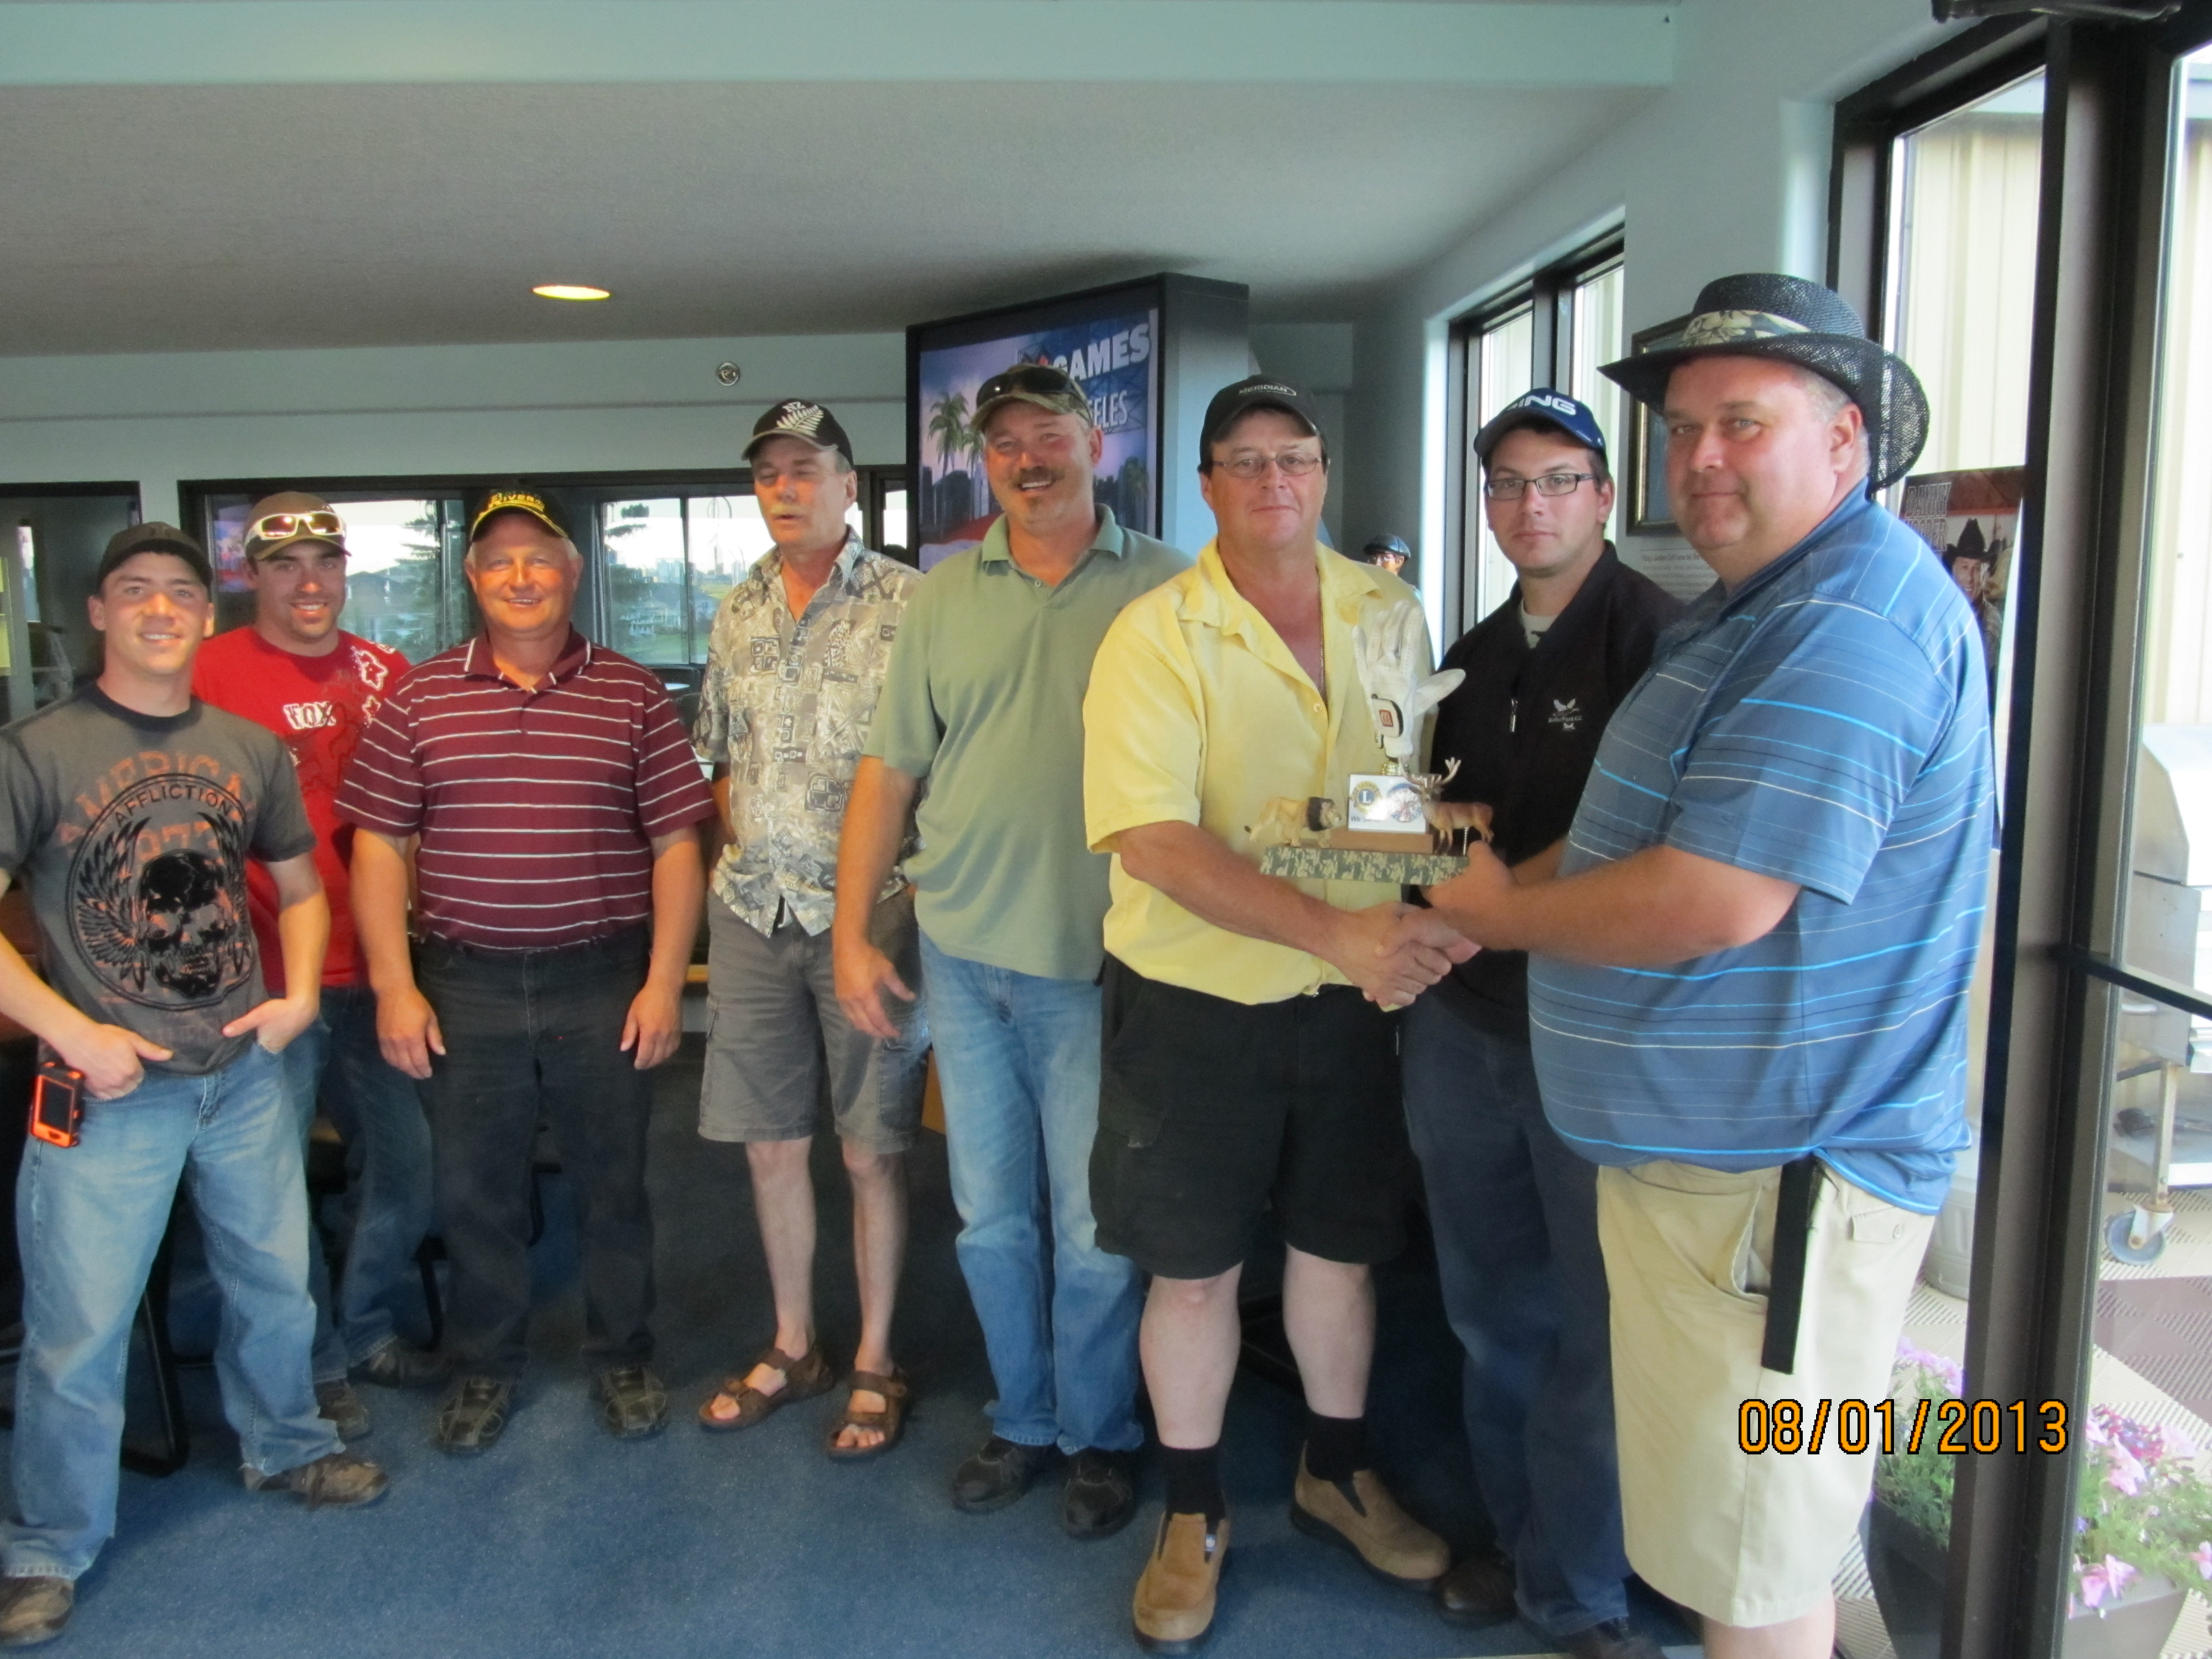 Elks win Lions/Elks golf match to raise funds for junior golf in Viking